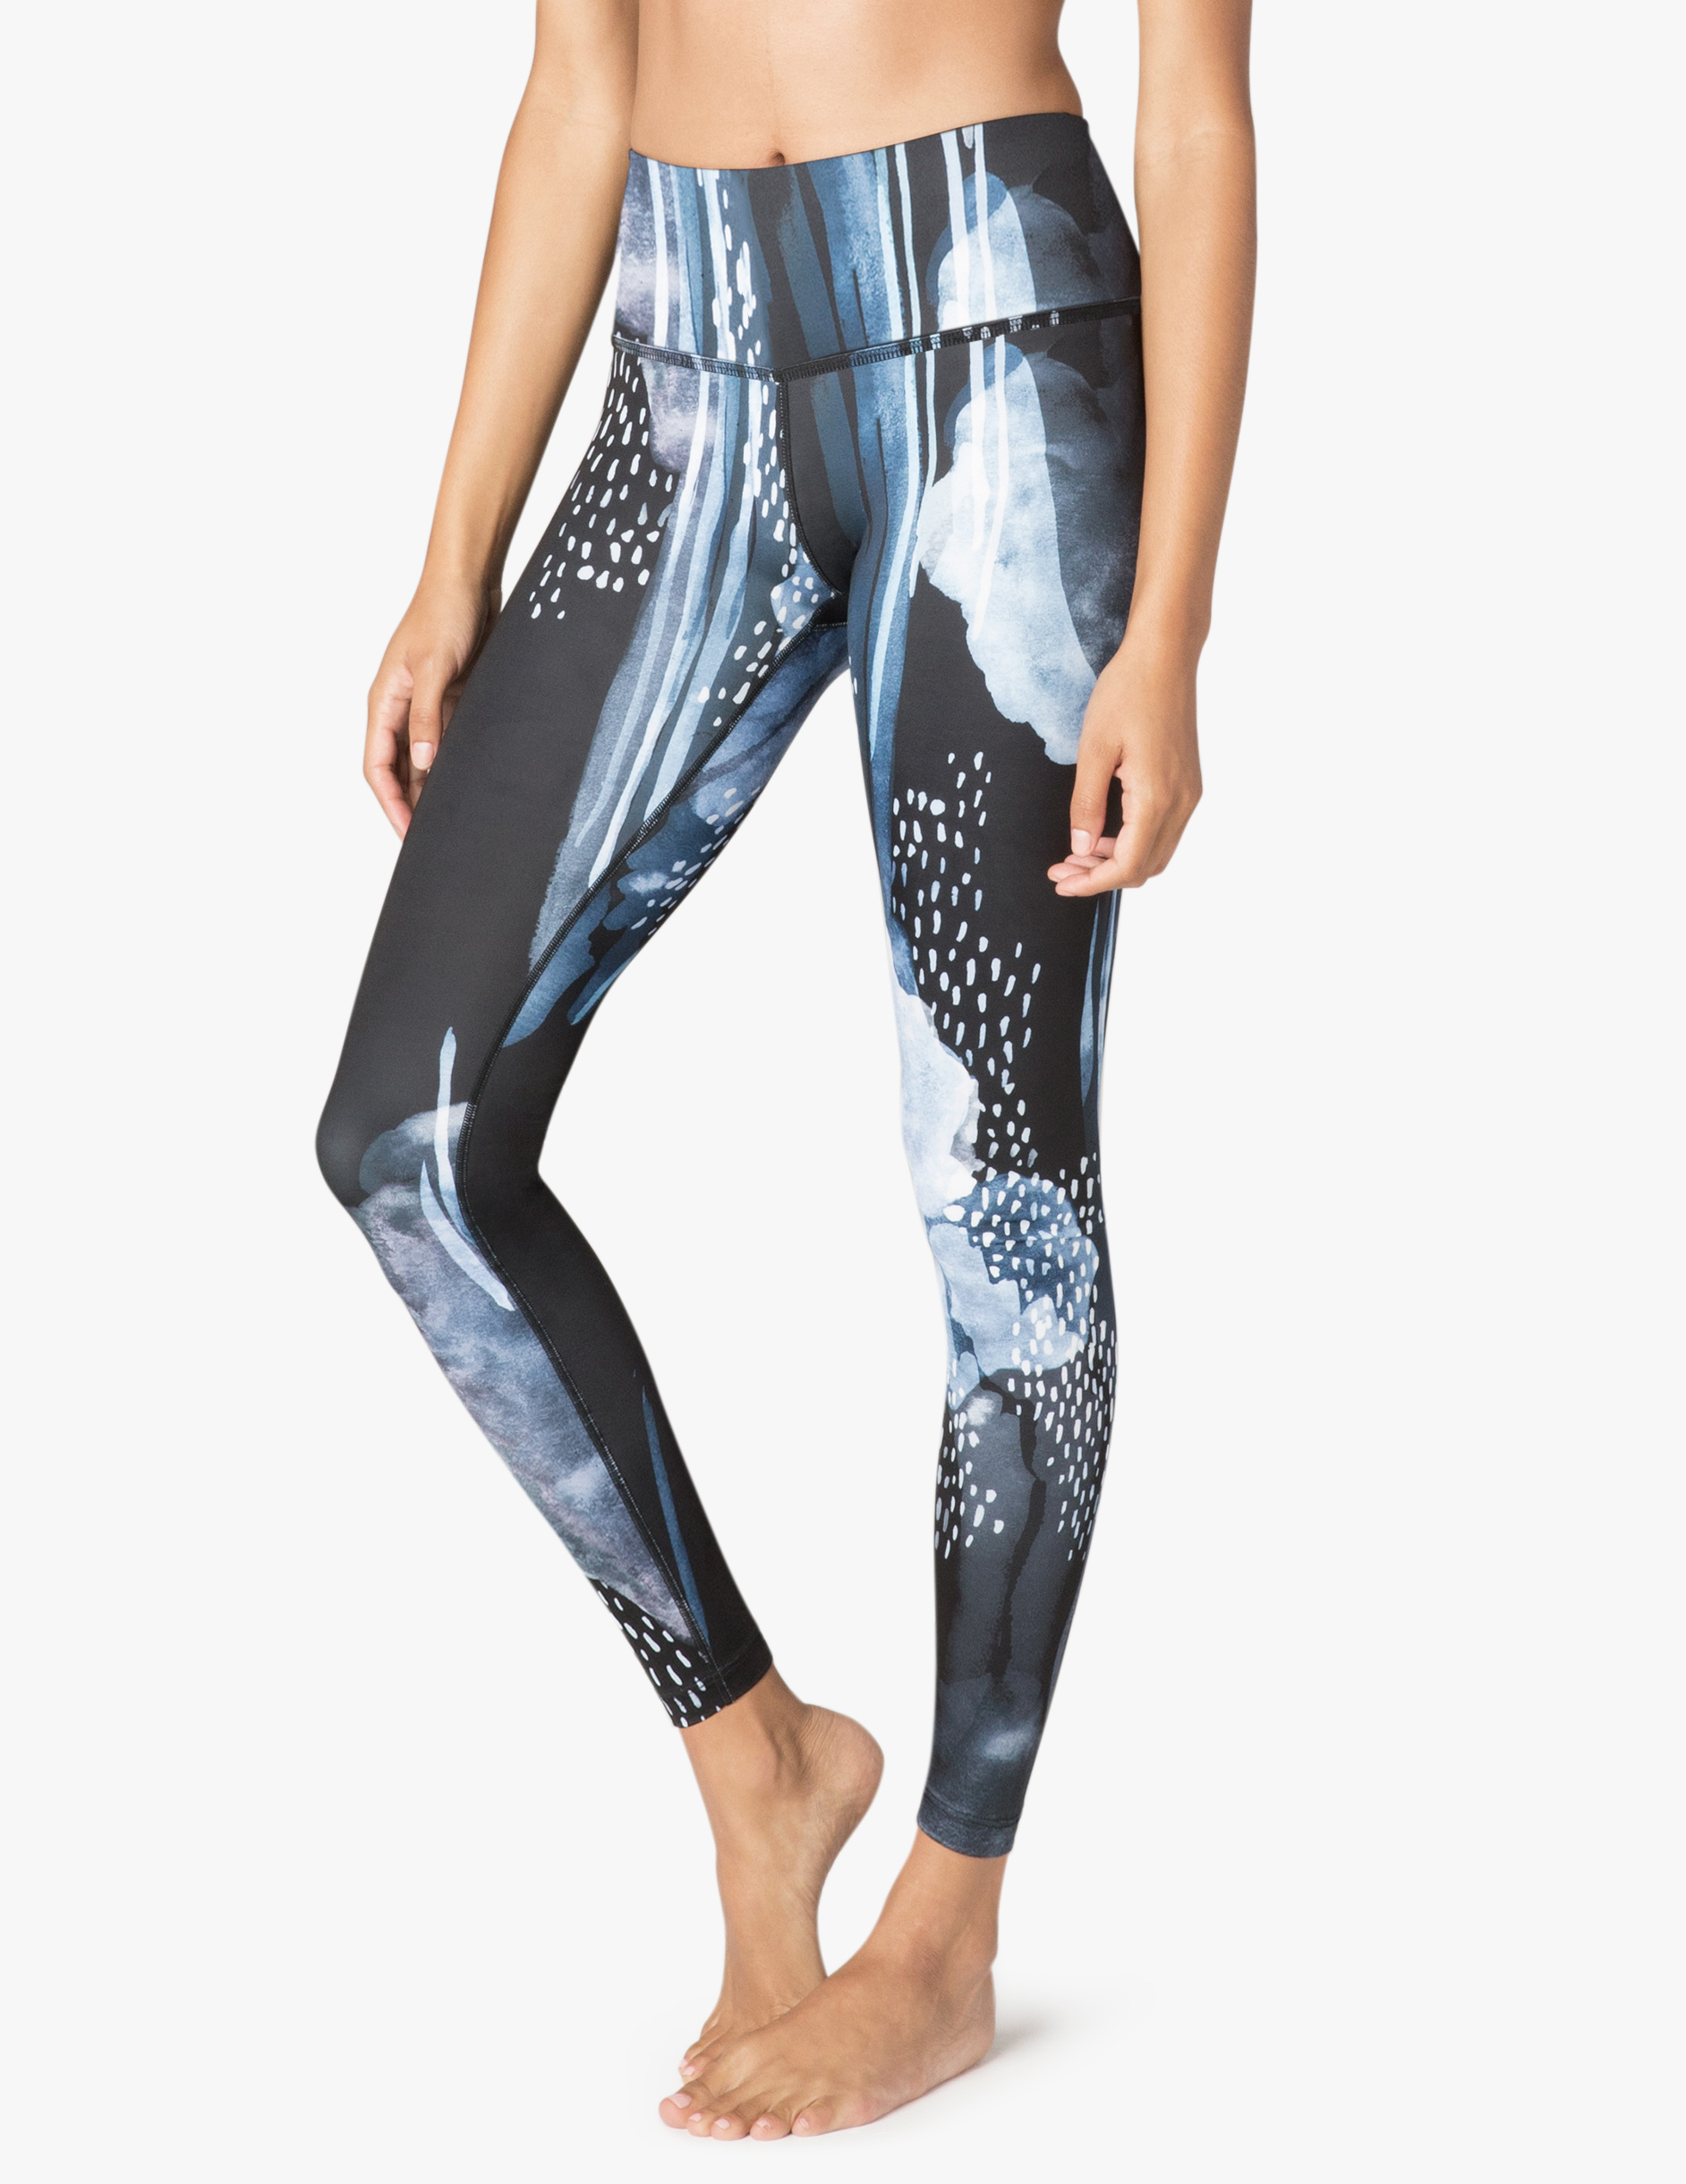 Beyond yoga high quality patterned leggings rainy clouds